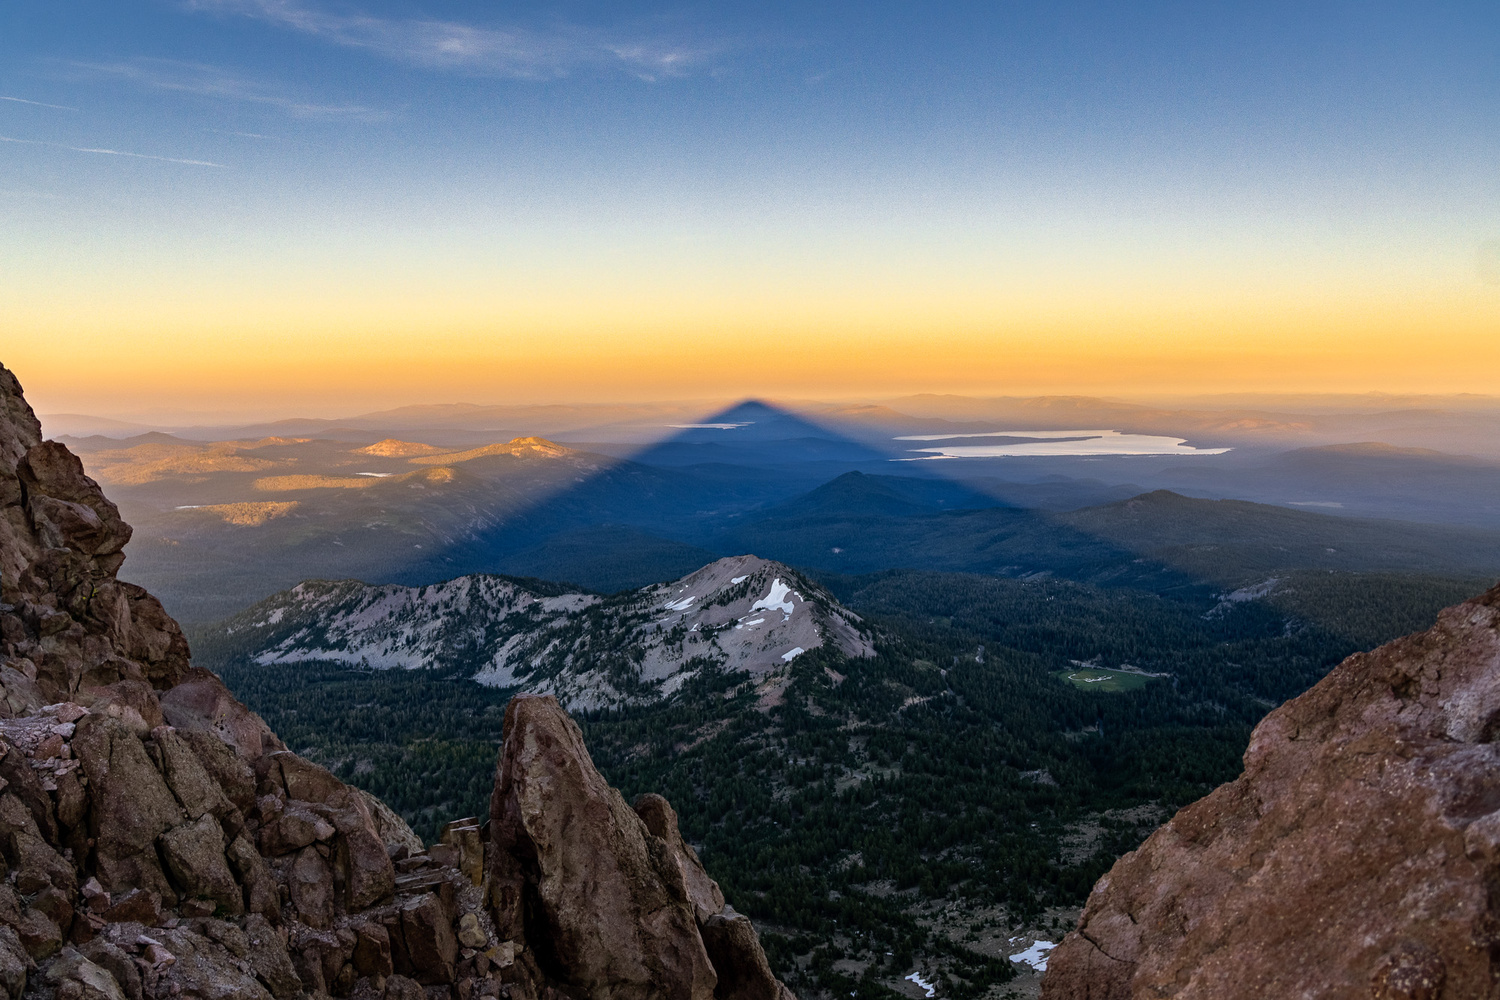 In the Shadow of the Mountain by Matt Chesebrough